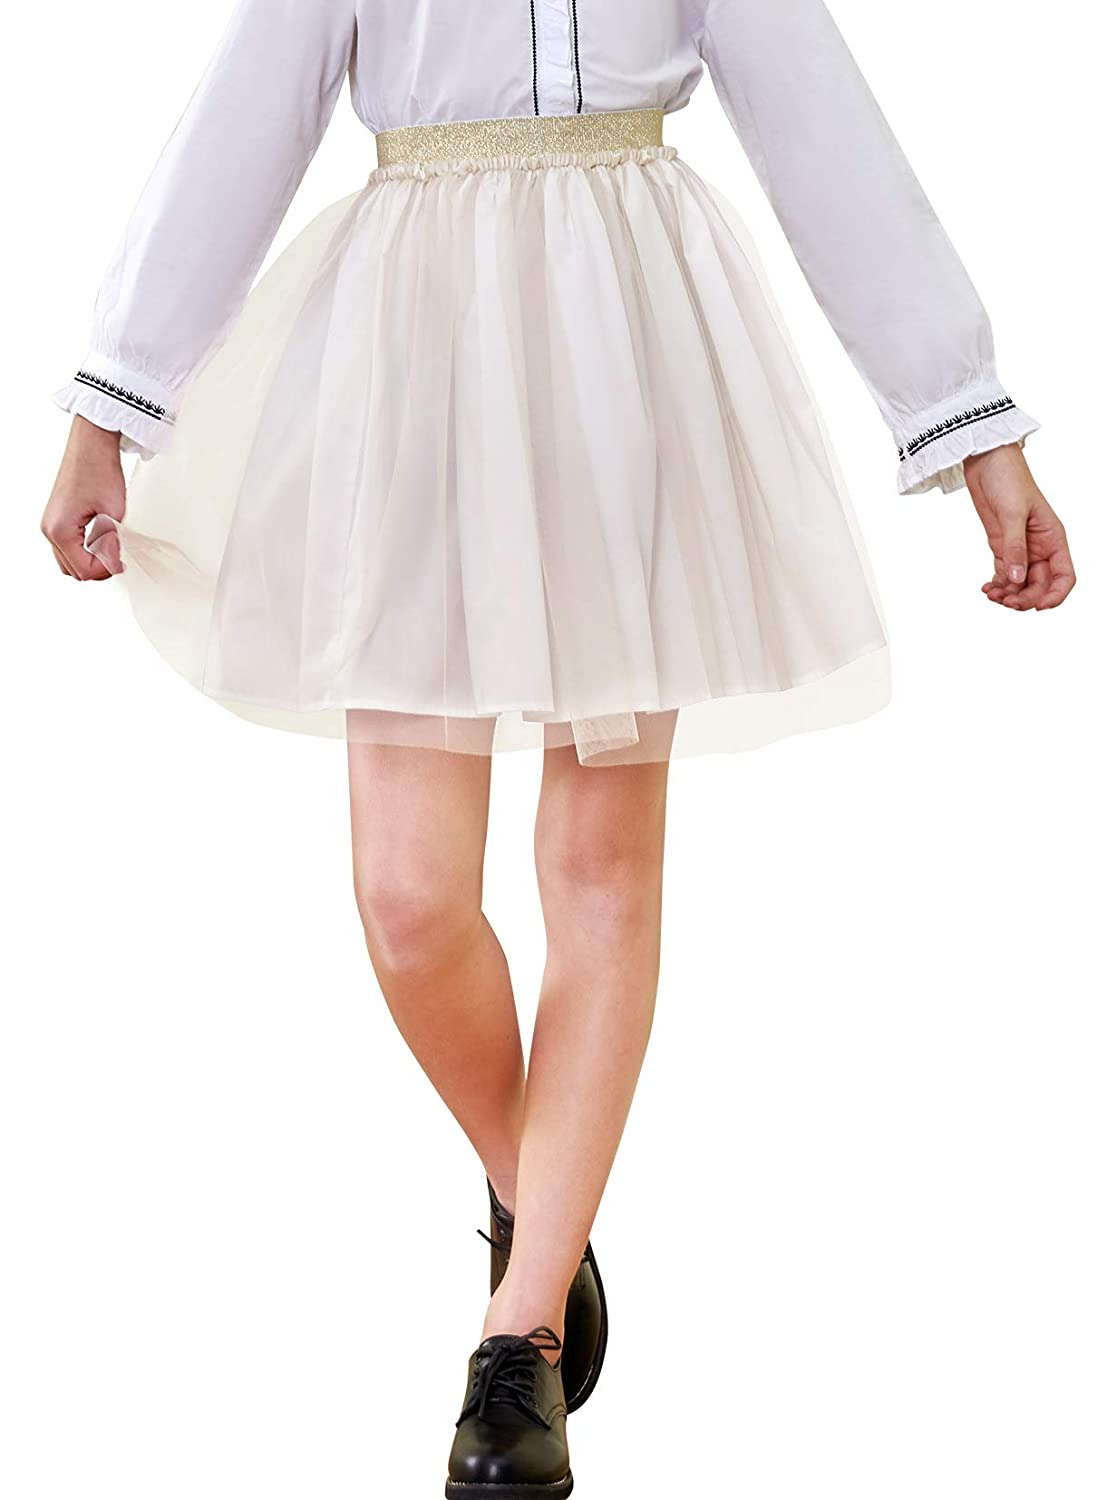 KIDPIK 3-Pack Pencil Skirts Knee Length Skirt for Girls 4 Years /& Up 3 Colors//Set Comfy Modest Clothing